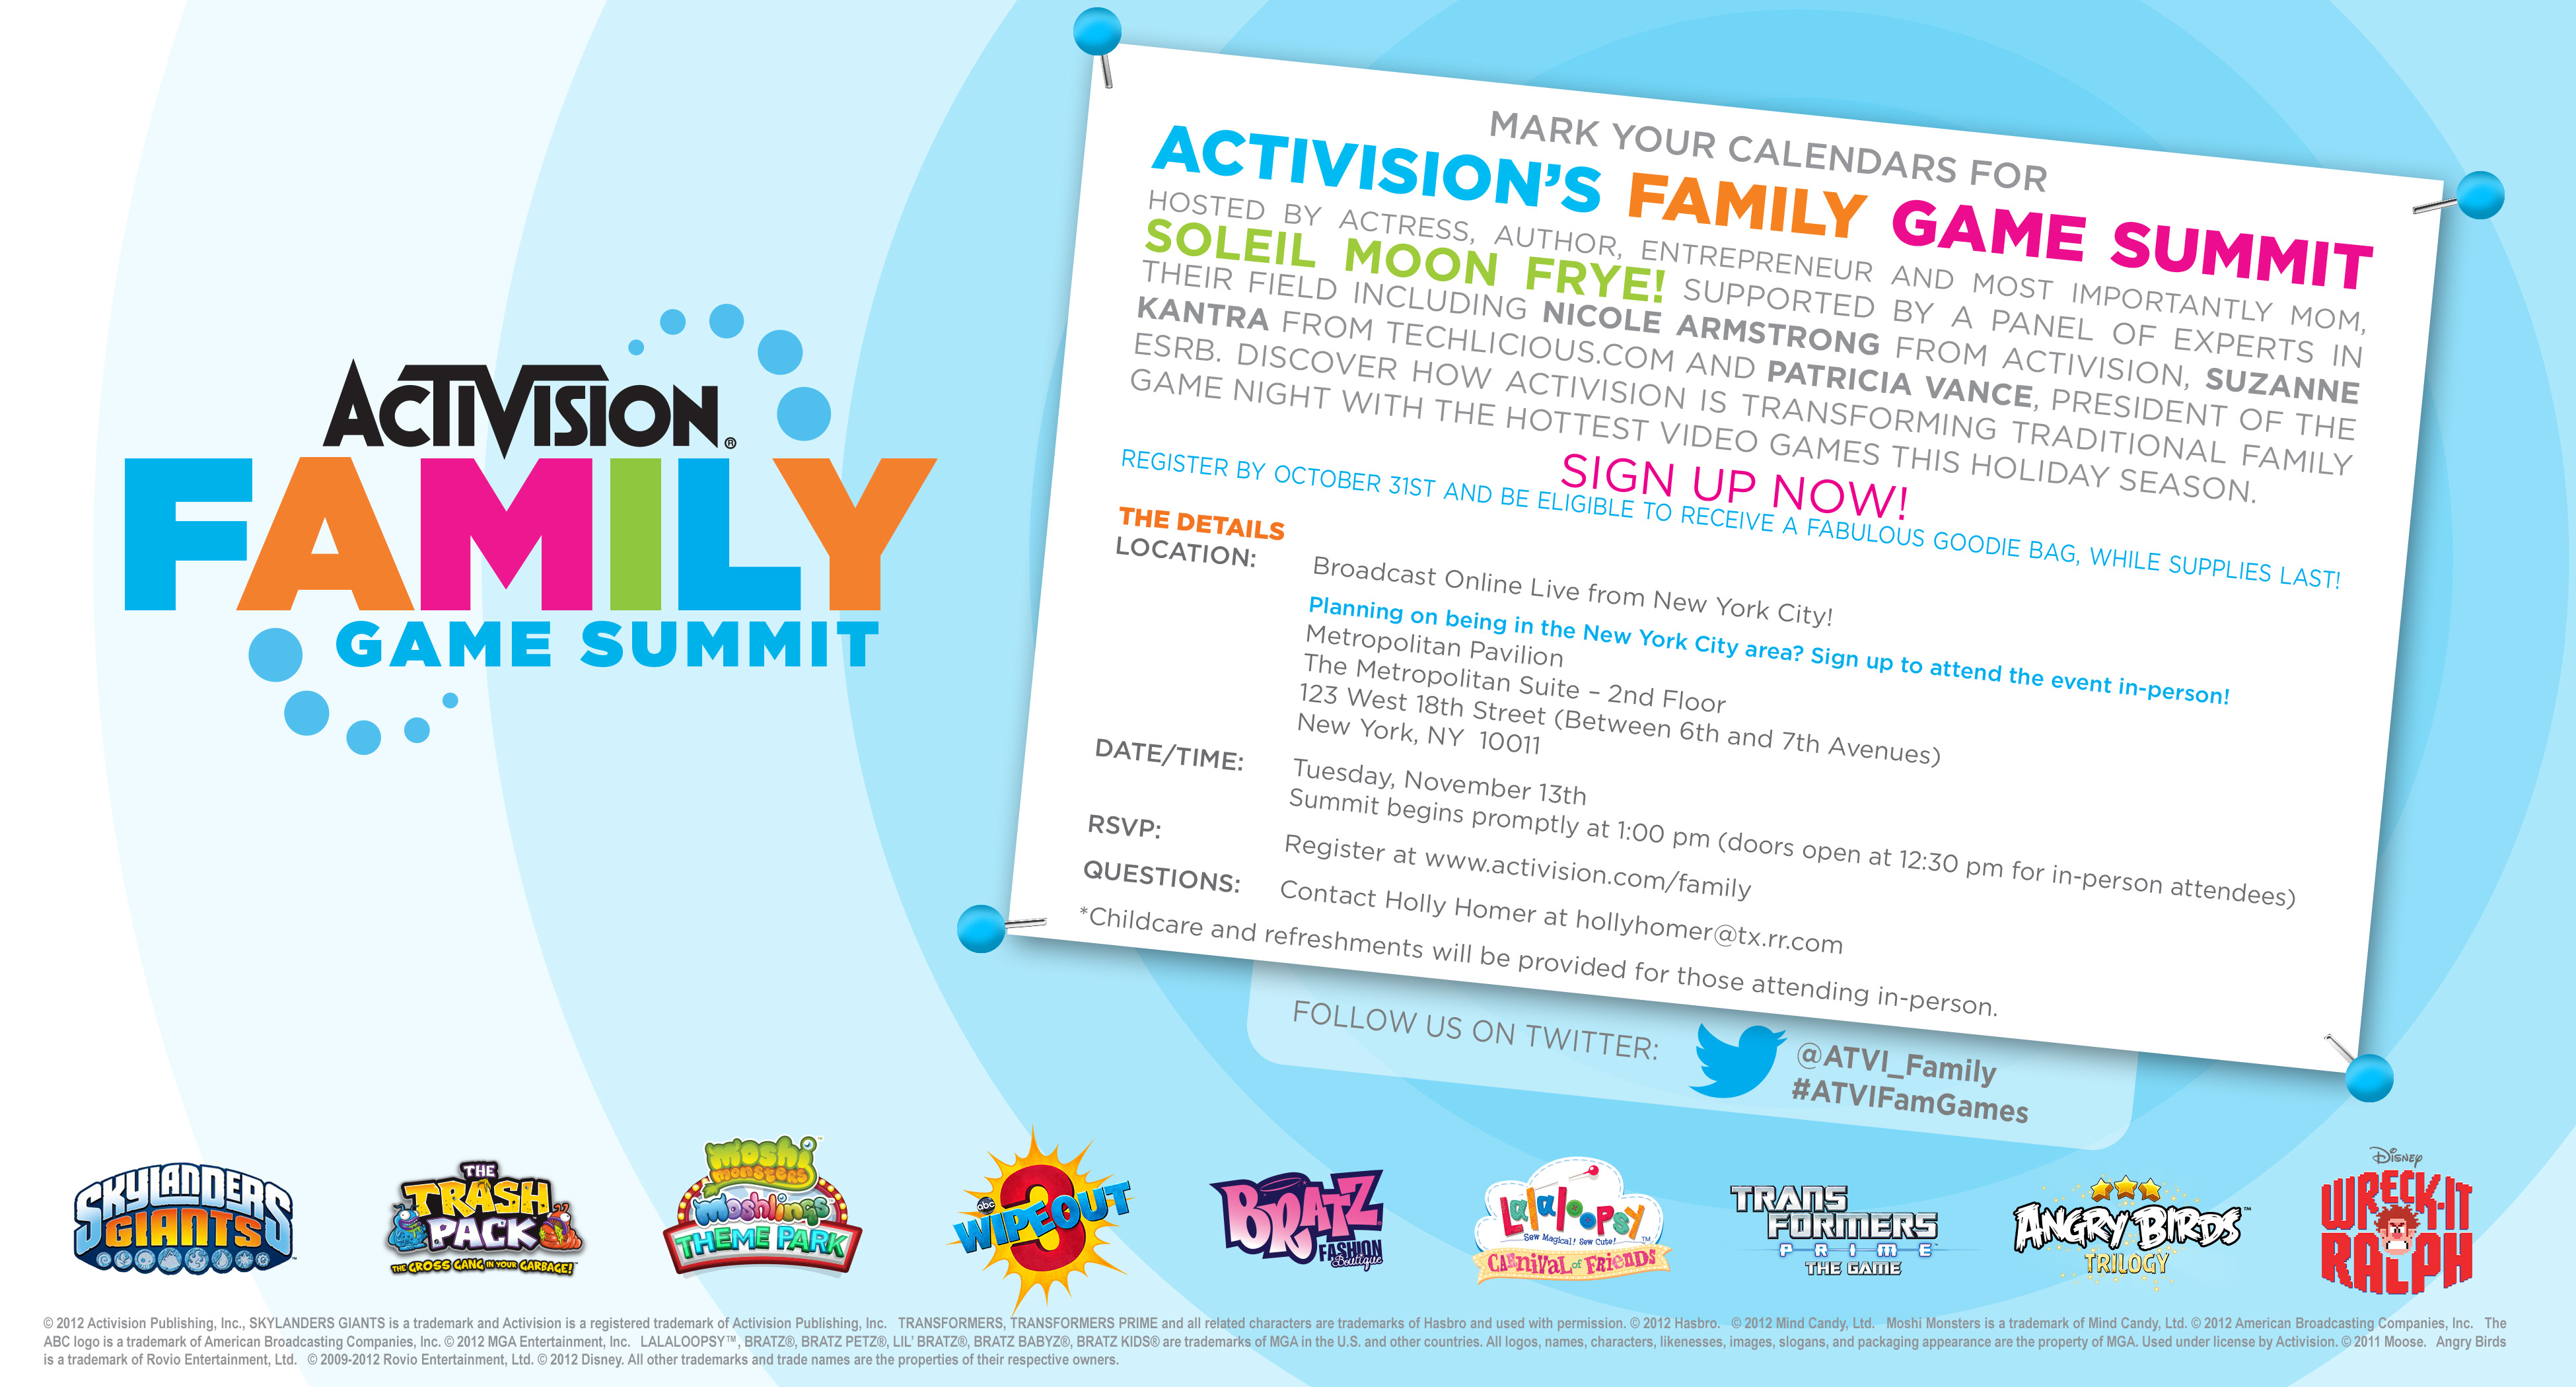 Activision Family Summit Invitation - Online